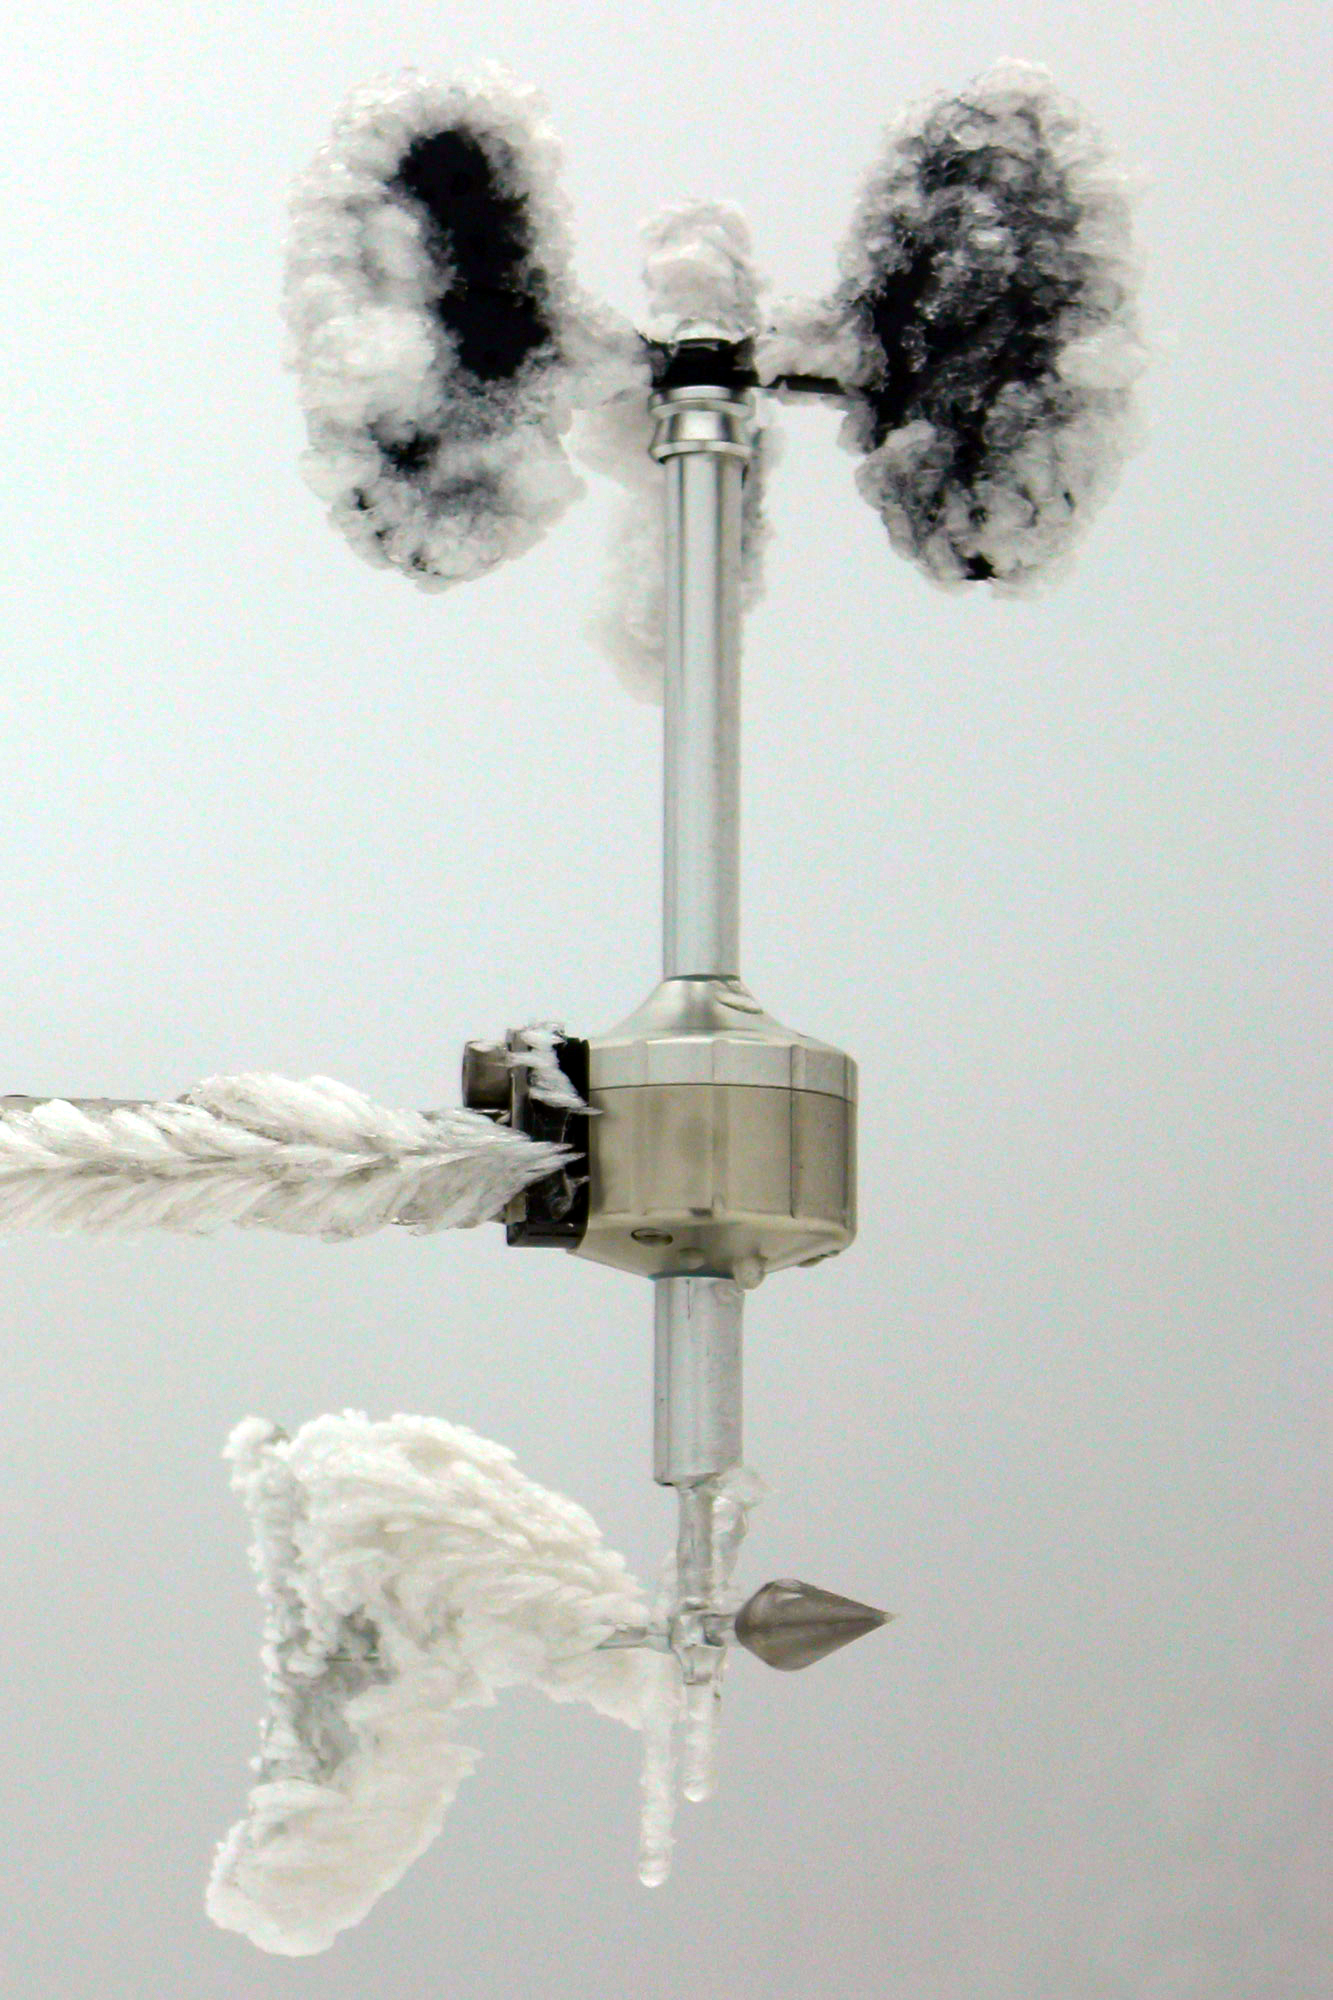 Heated anemometer MeteoWind® 2 in extreme winter icing.